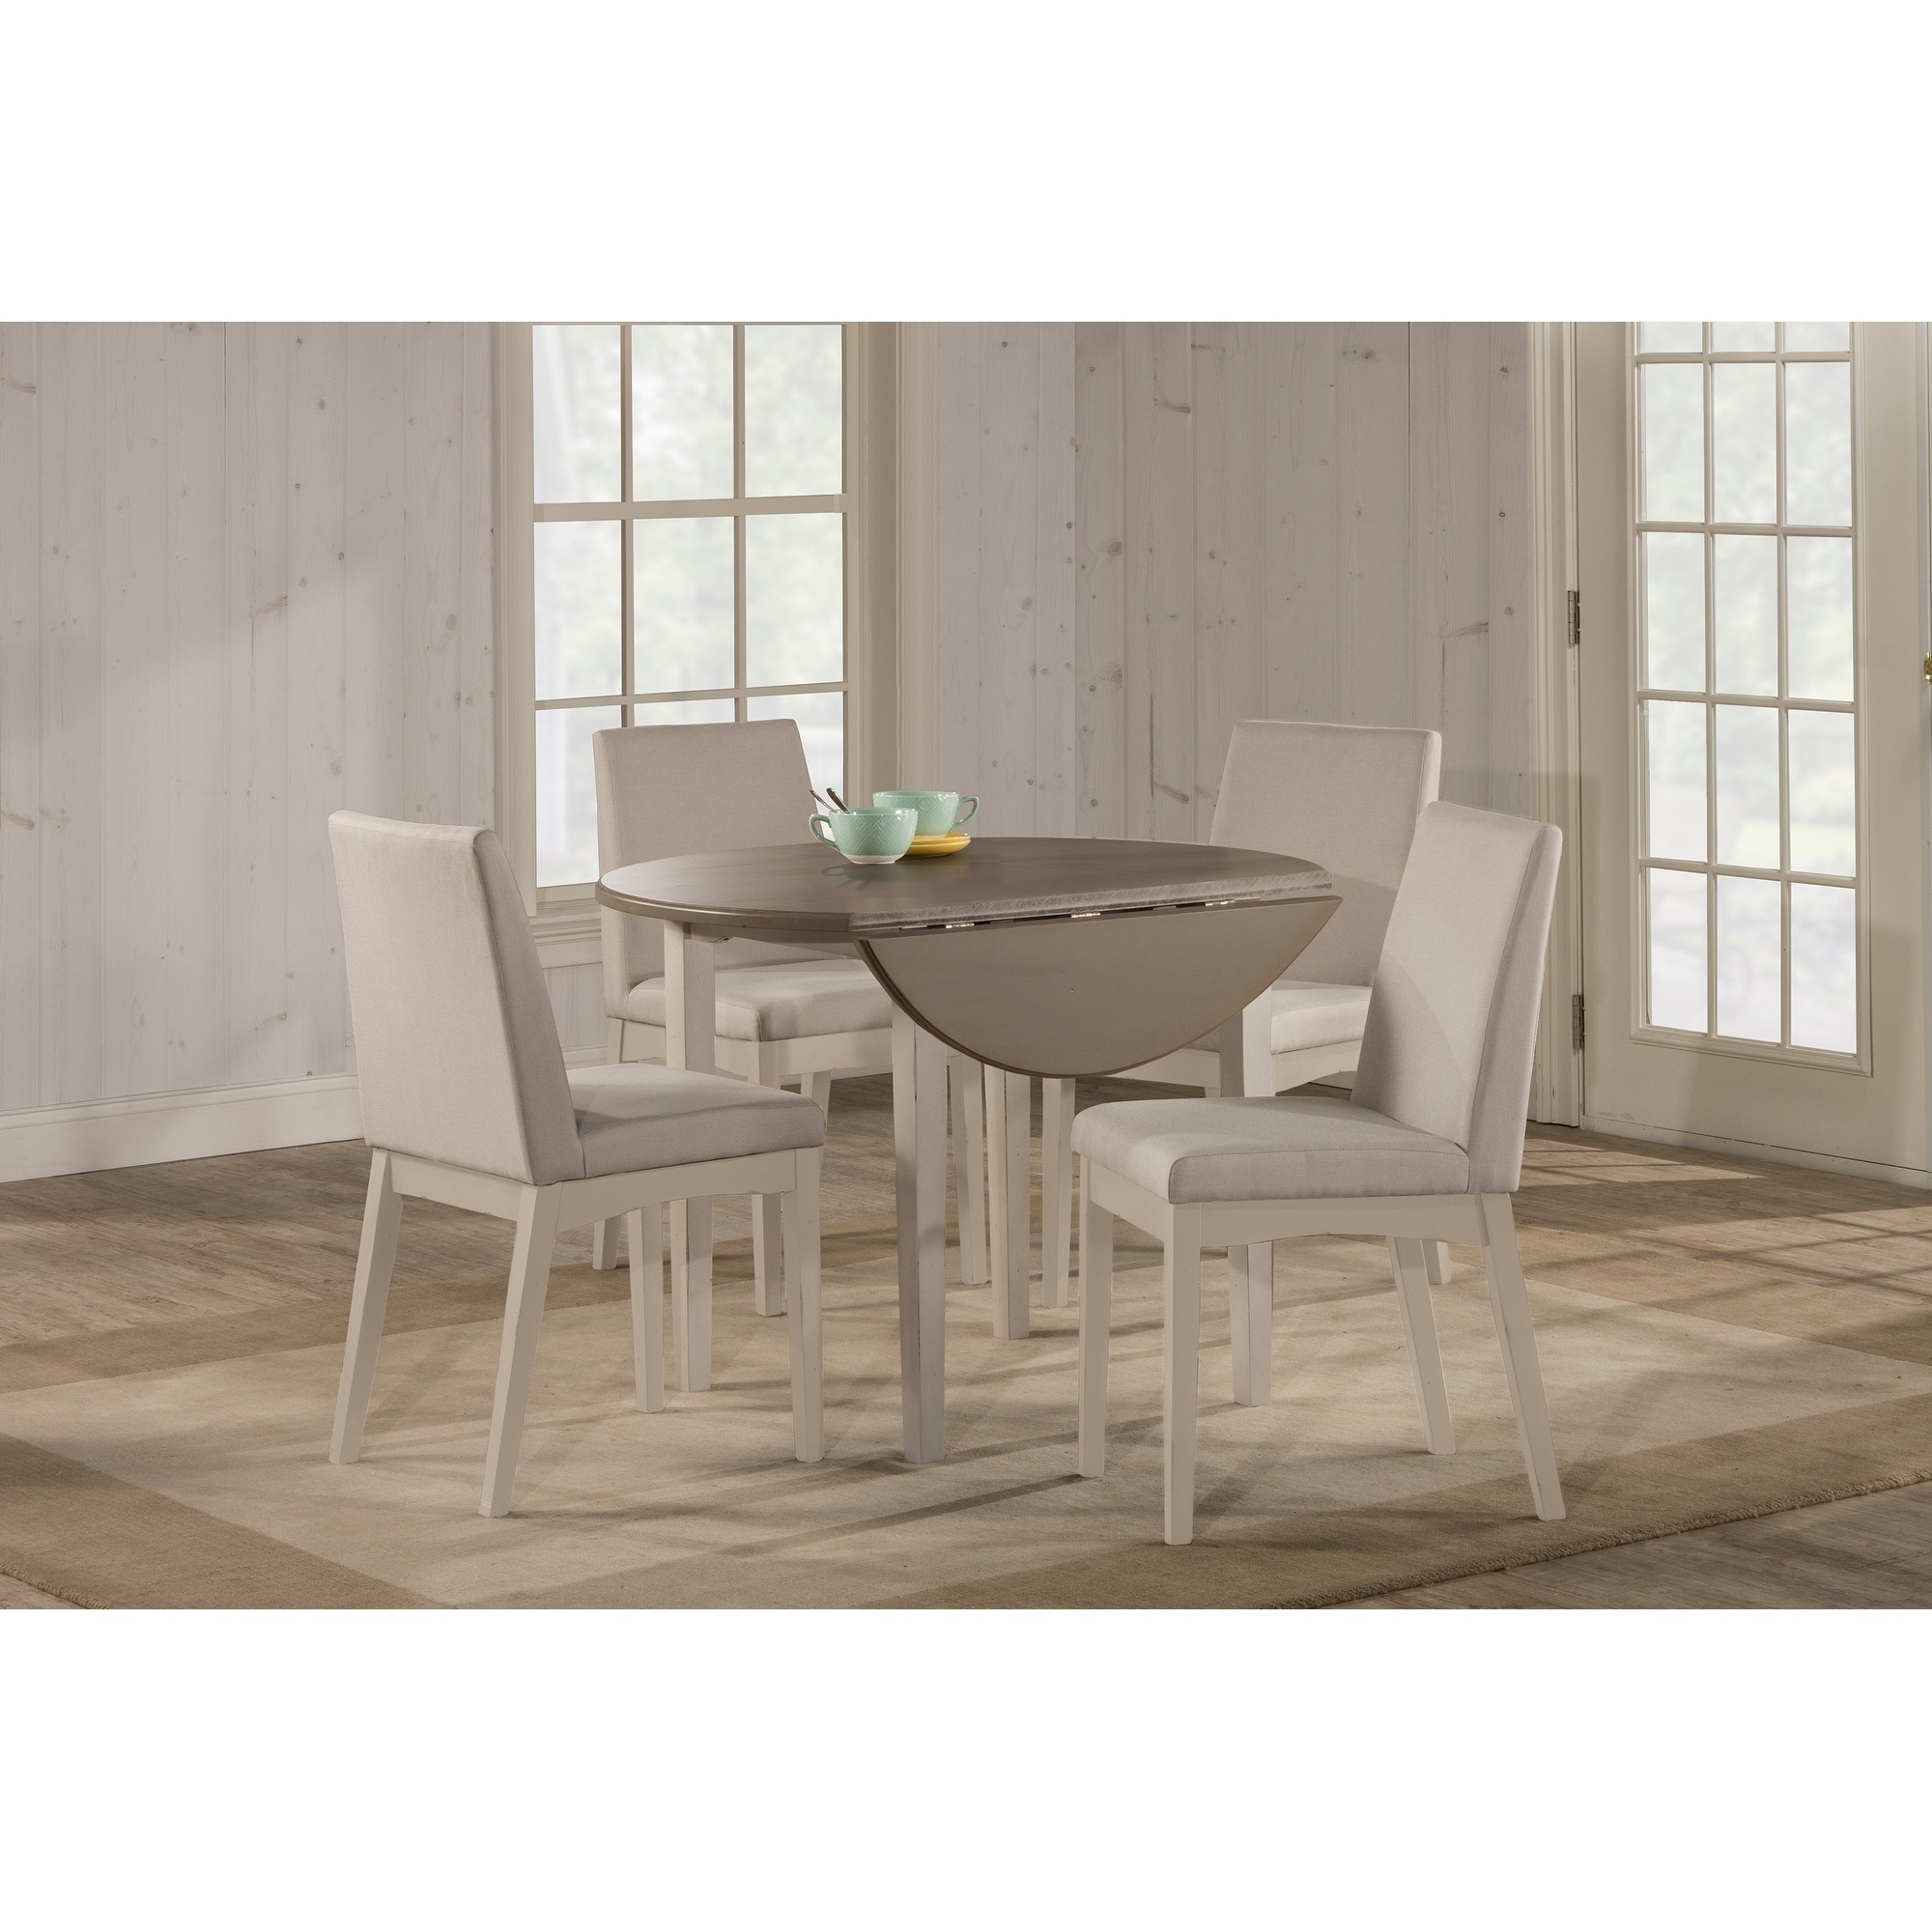 Fashionable Hillsdale Furniture Clarion Five (5) Piece Round Drop Leaf For Transitional 3 Piece Drop Leaf Casual Dining Tables Set (View 3 of 25)